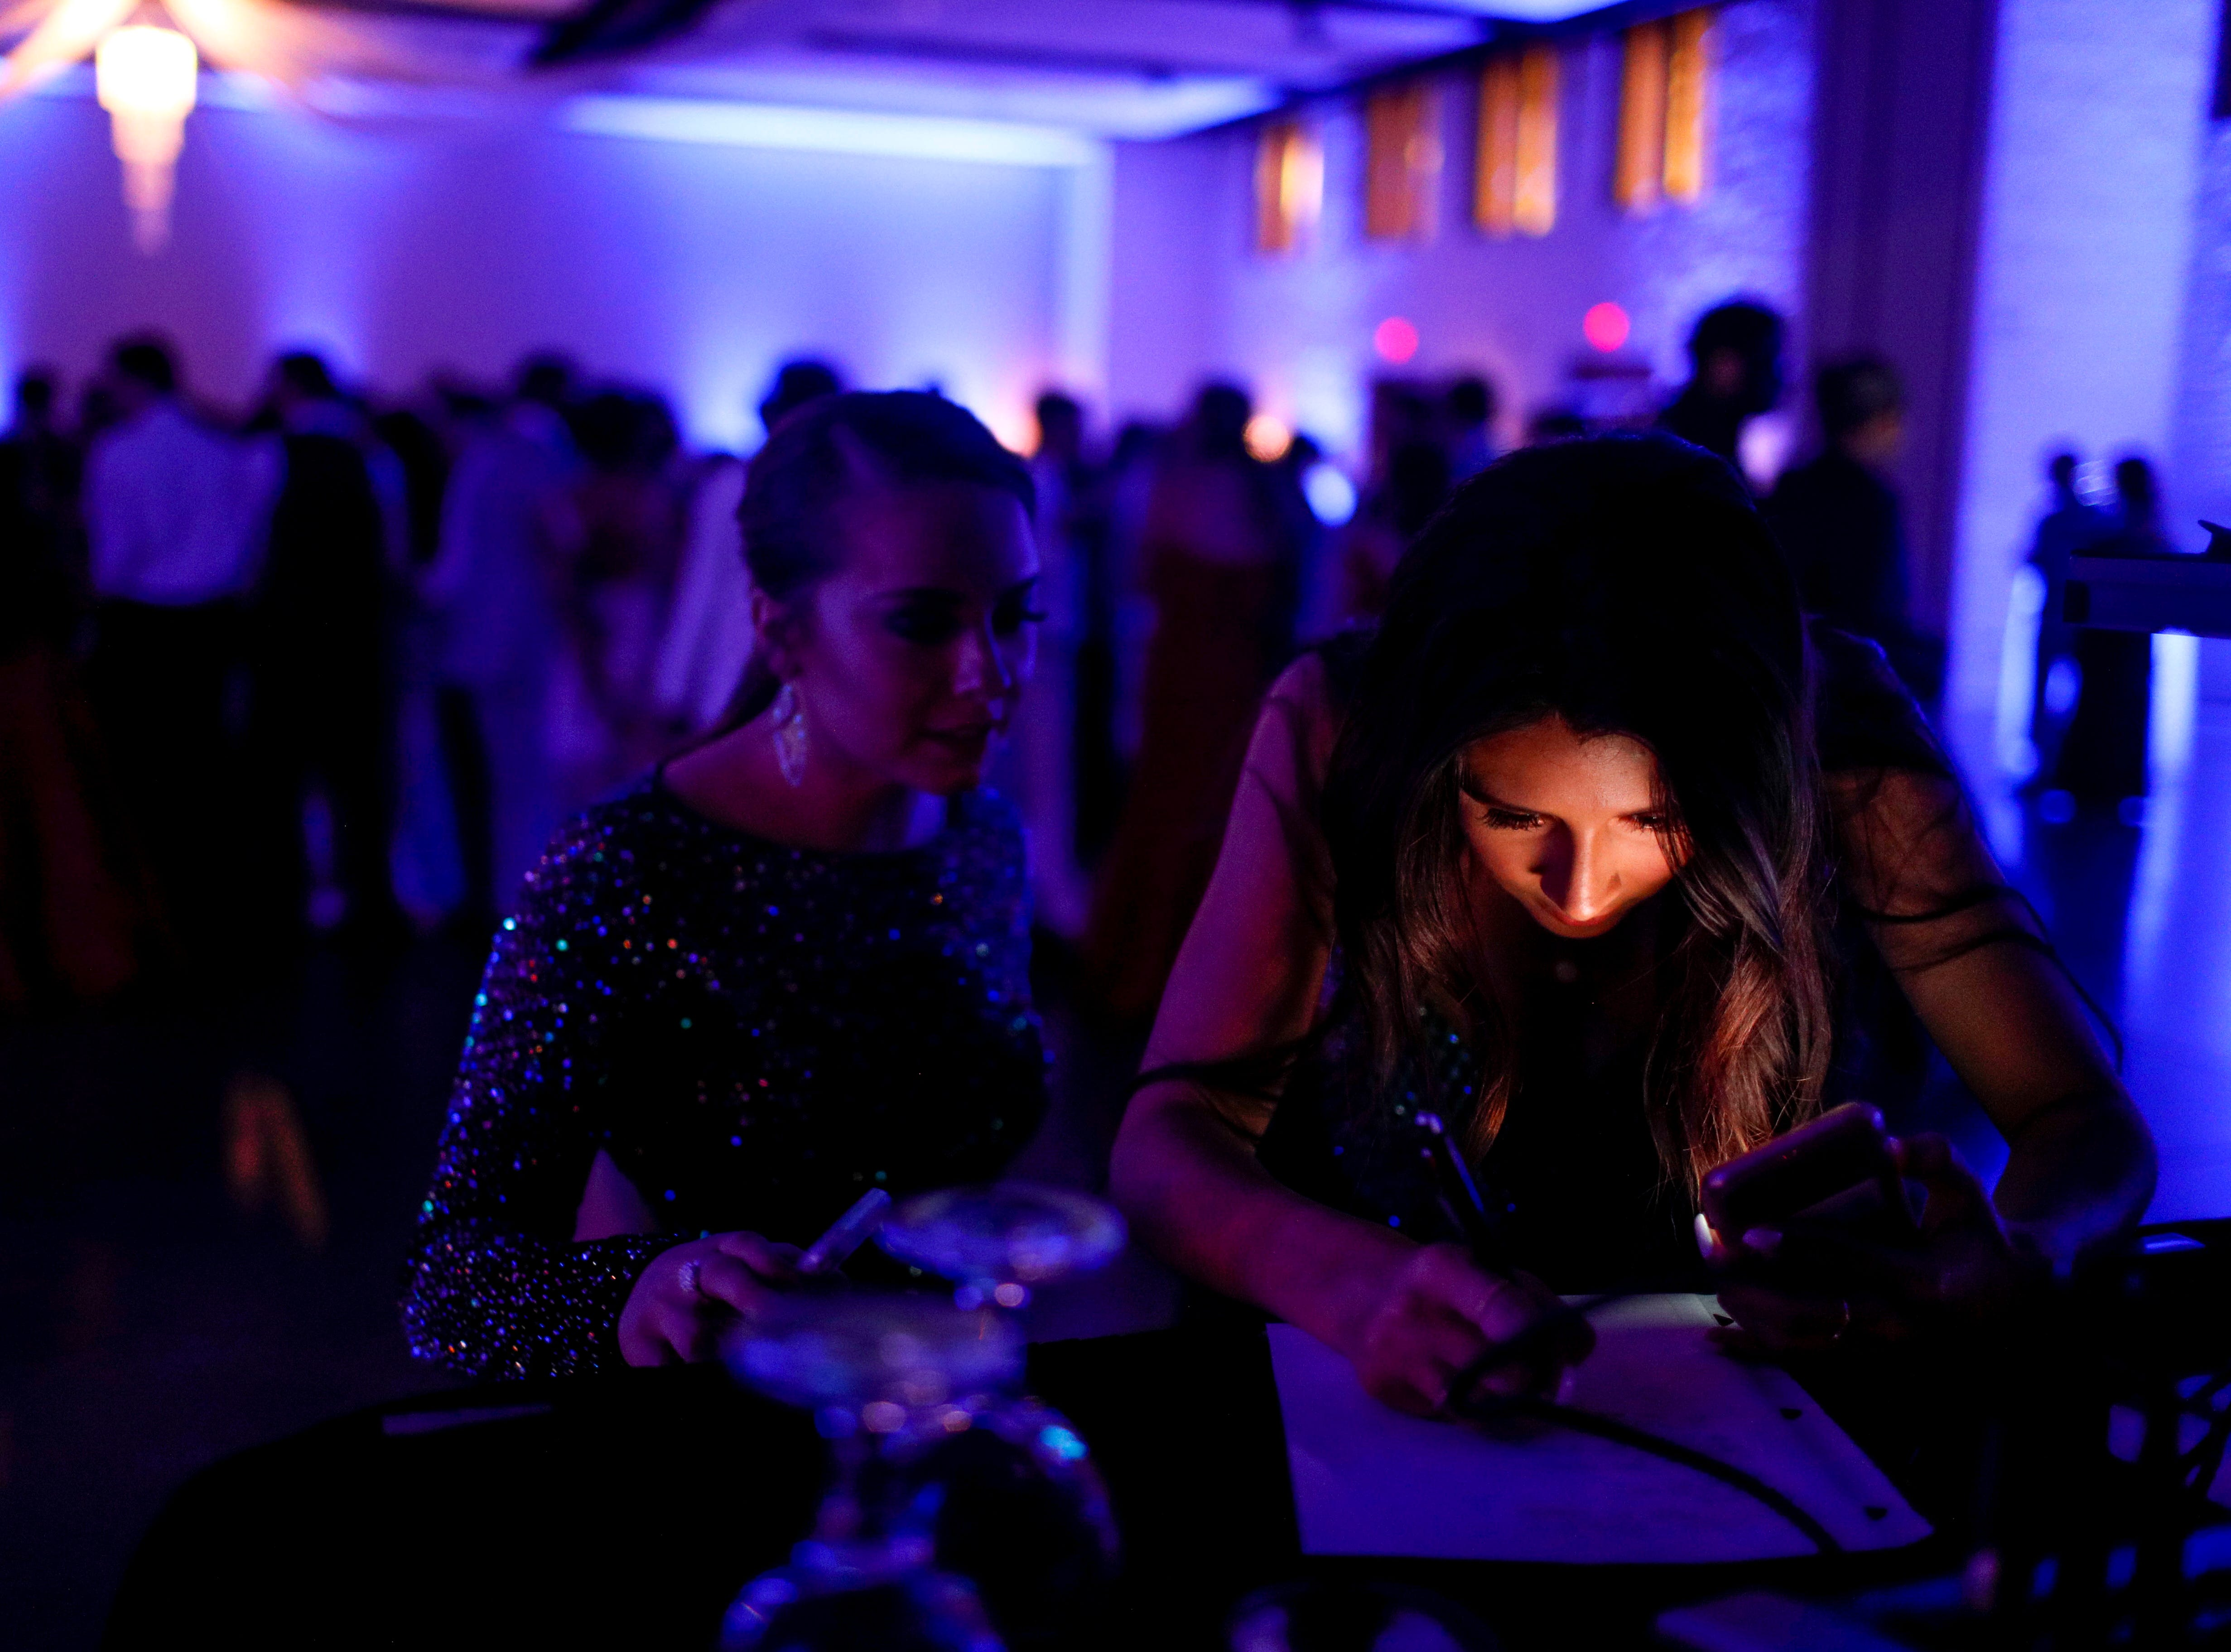 Students approach the DJ to write down song requests during Clarksville Academy's 2019 prom at The Bruce Convention Center in Hopkinsville, Ky., on Saturday, April 6, 2019.